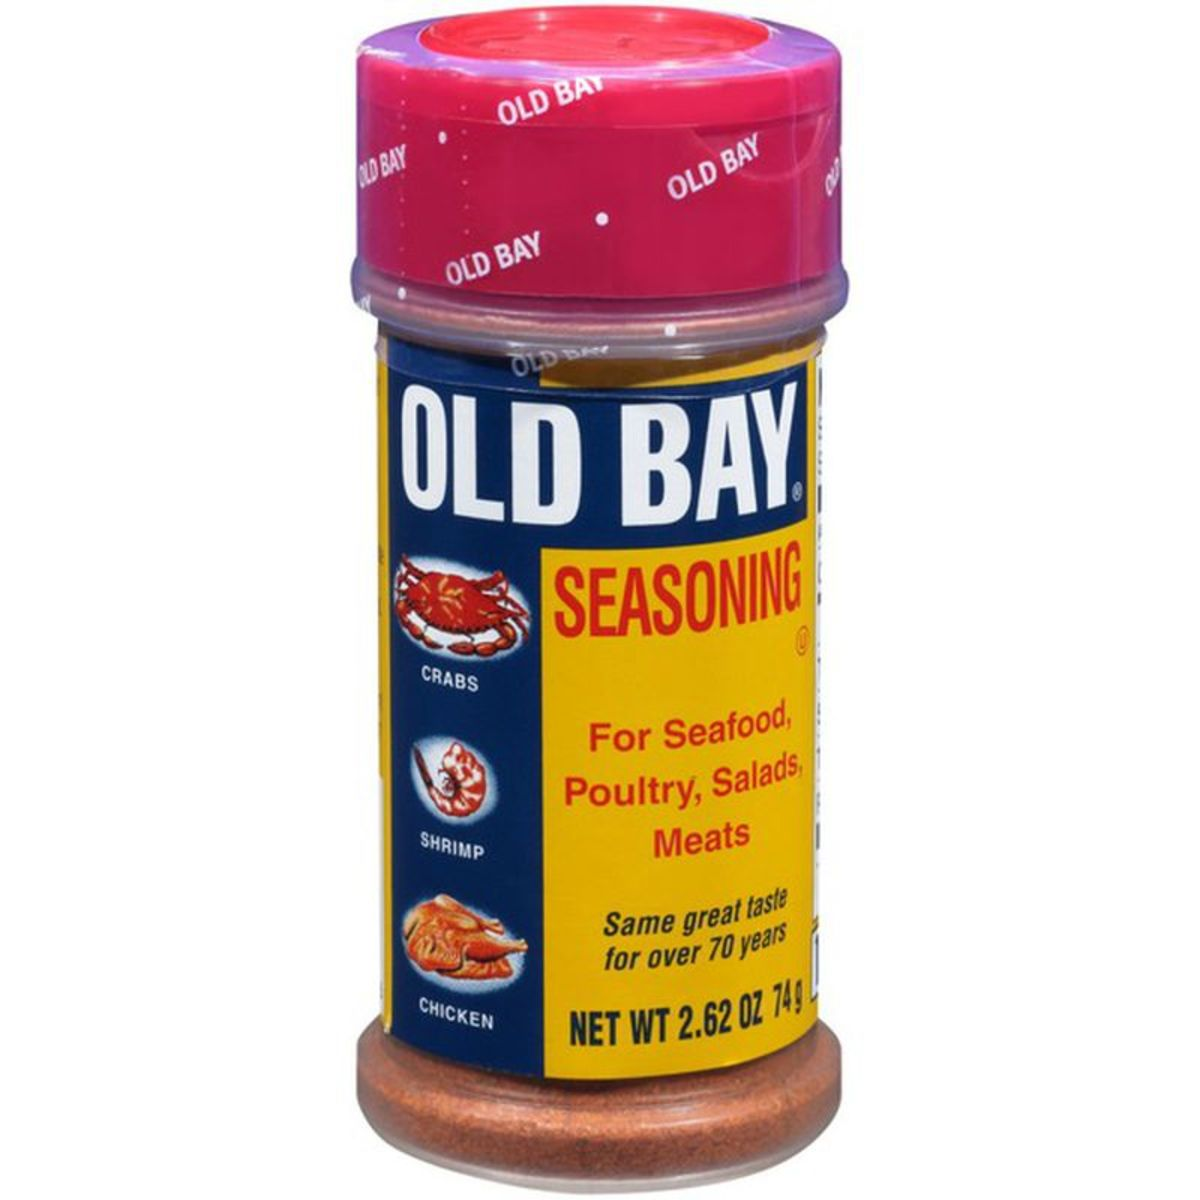 Old Bay in plastic container